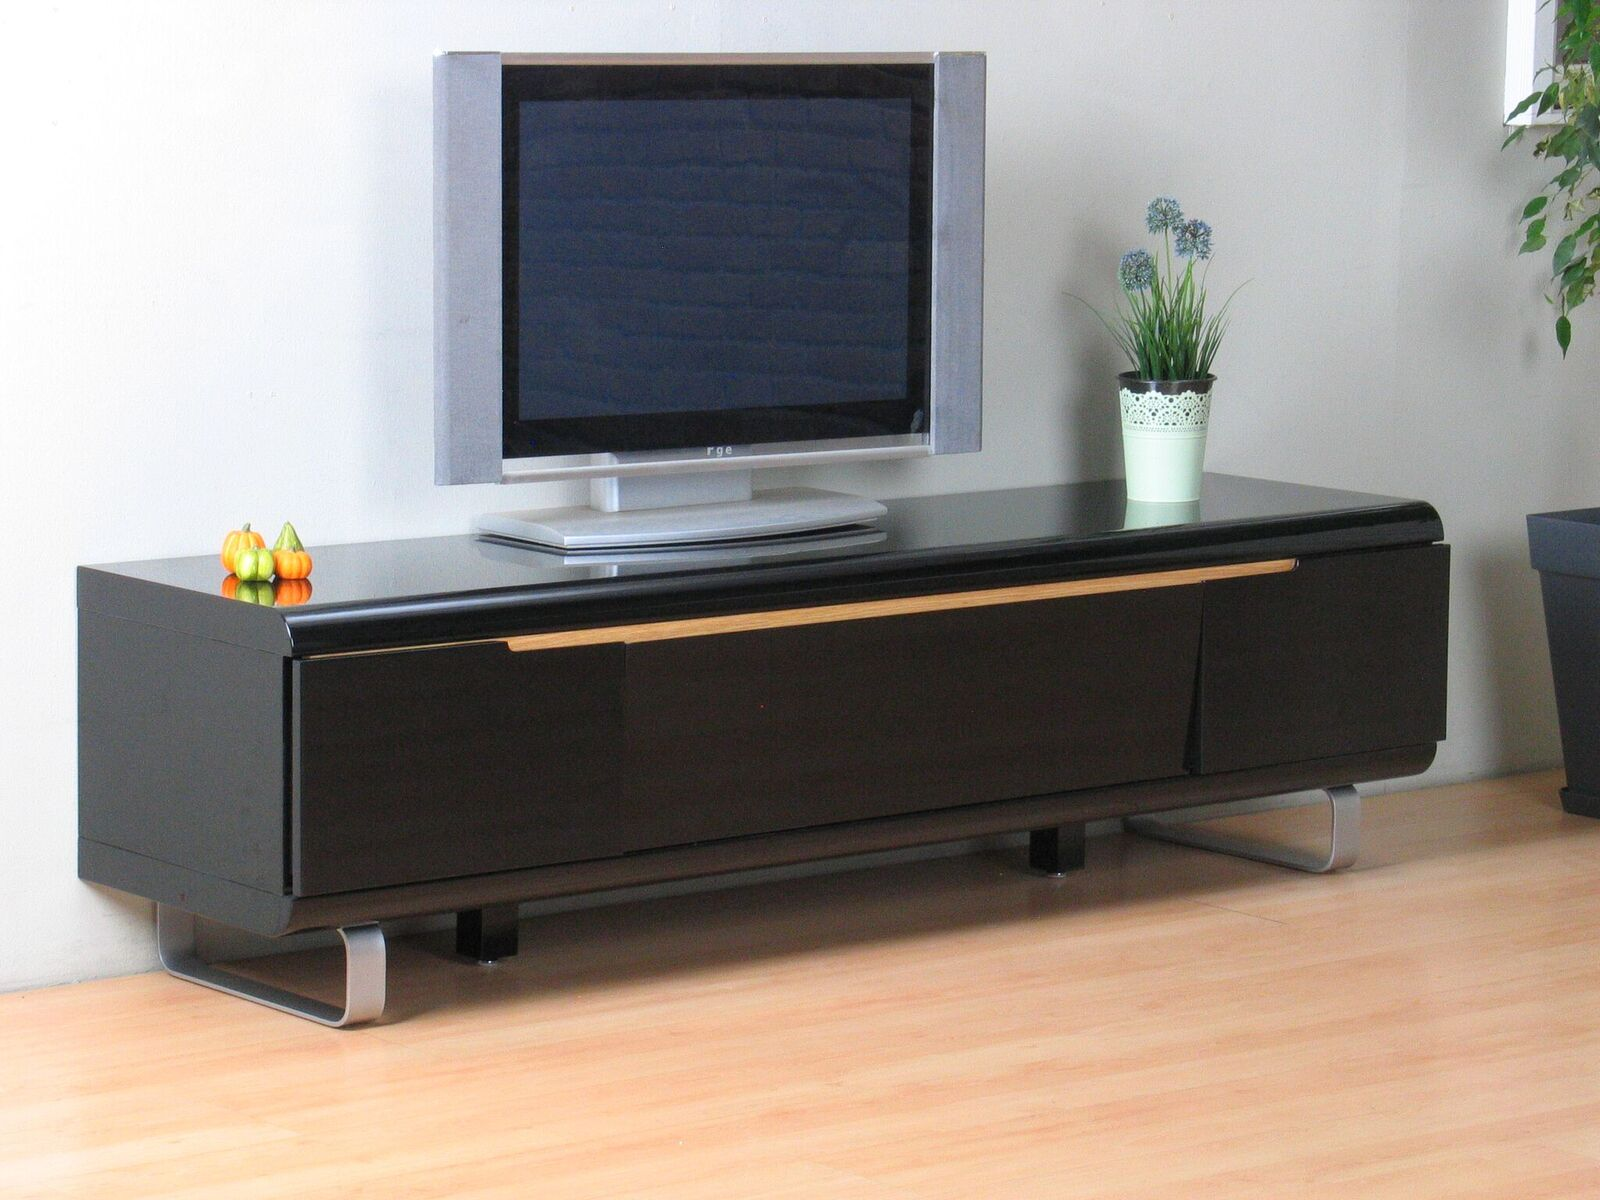 tv lowboard spacy hochglanz schwarz kommode sideboard fernseher hifi schrank ebay. Black Bedroom Furniture Sets. Home Design Ideas